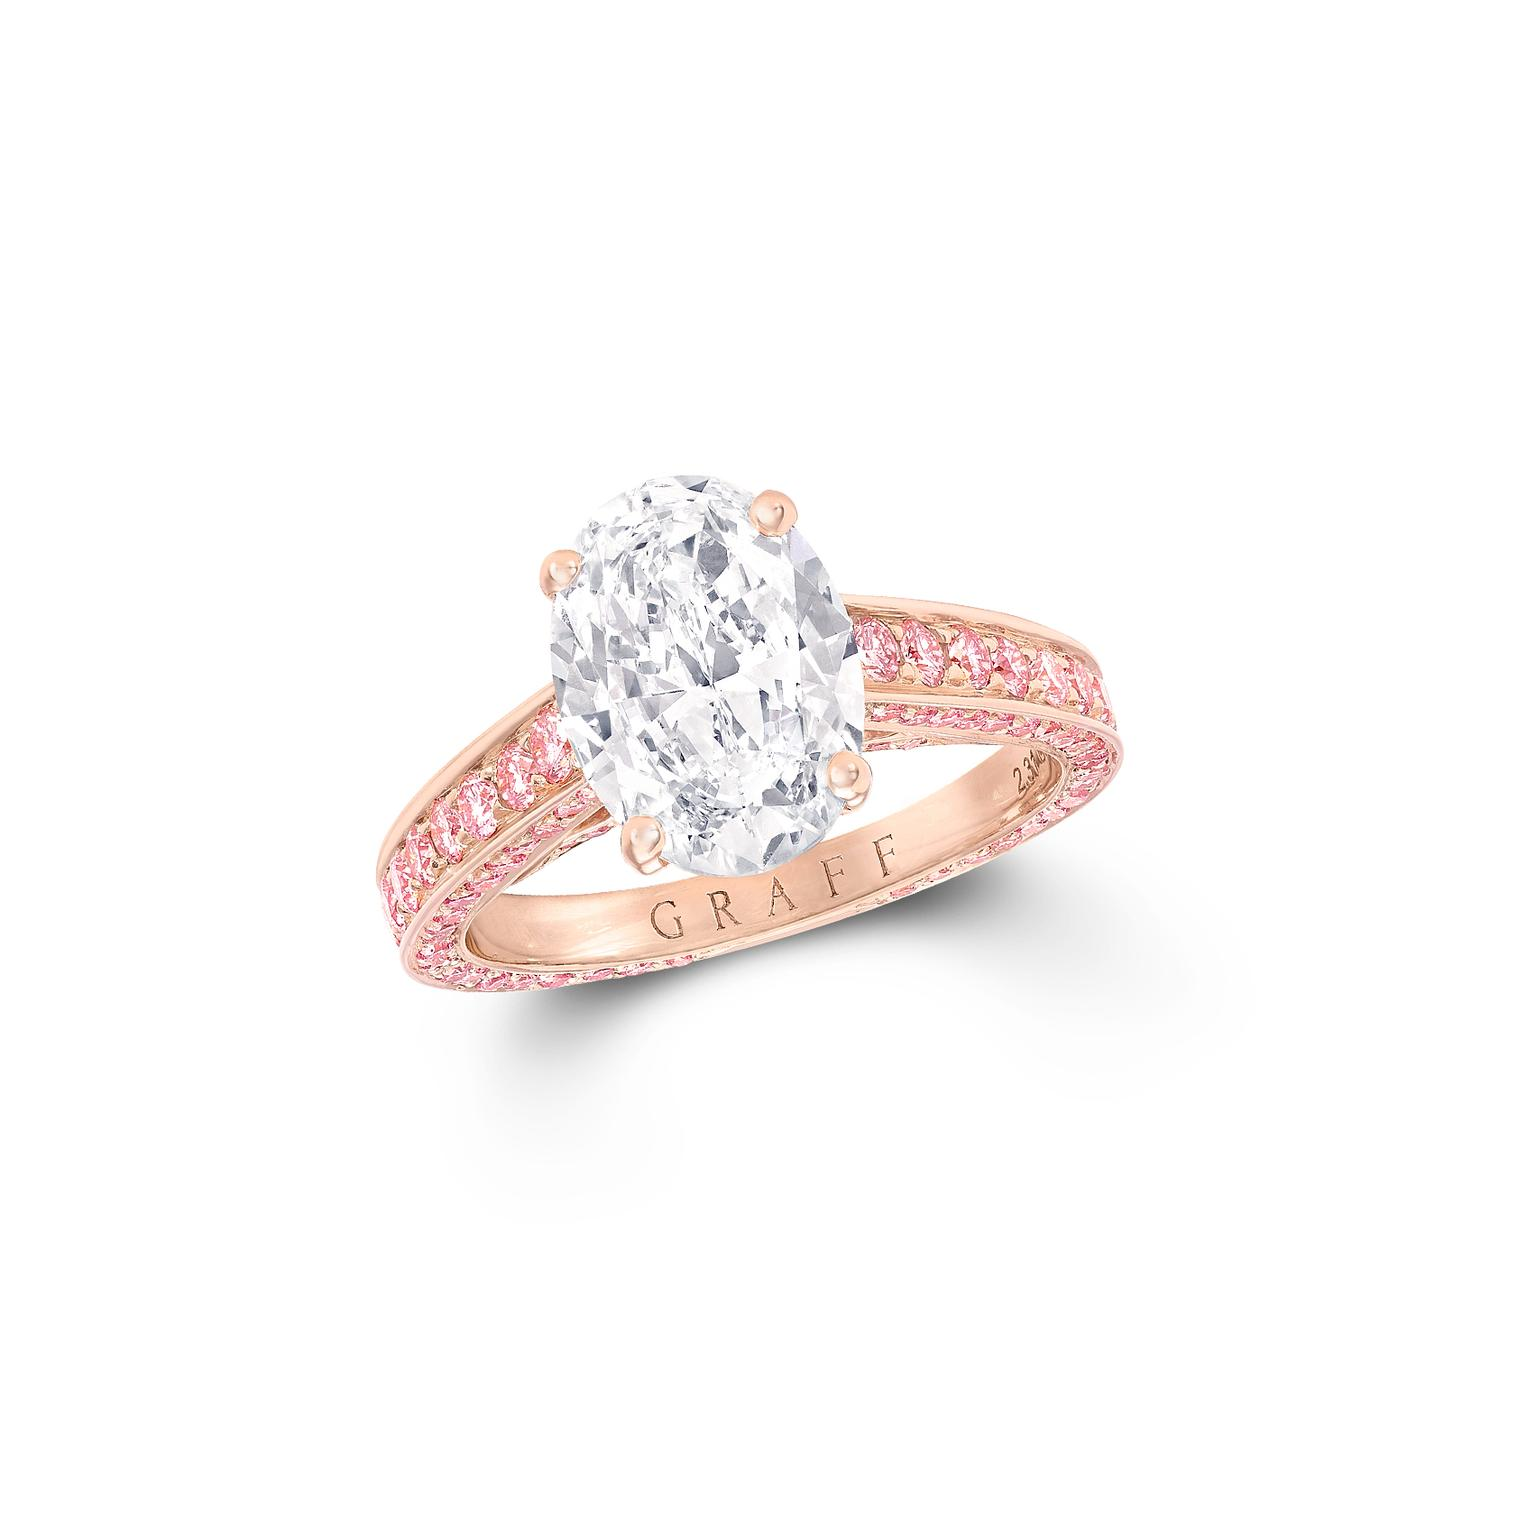 Graff Flame oval cut diamond ring with pink diamond pavé